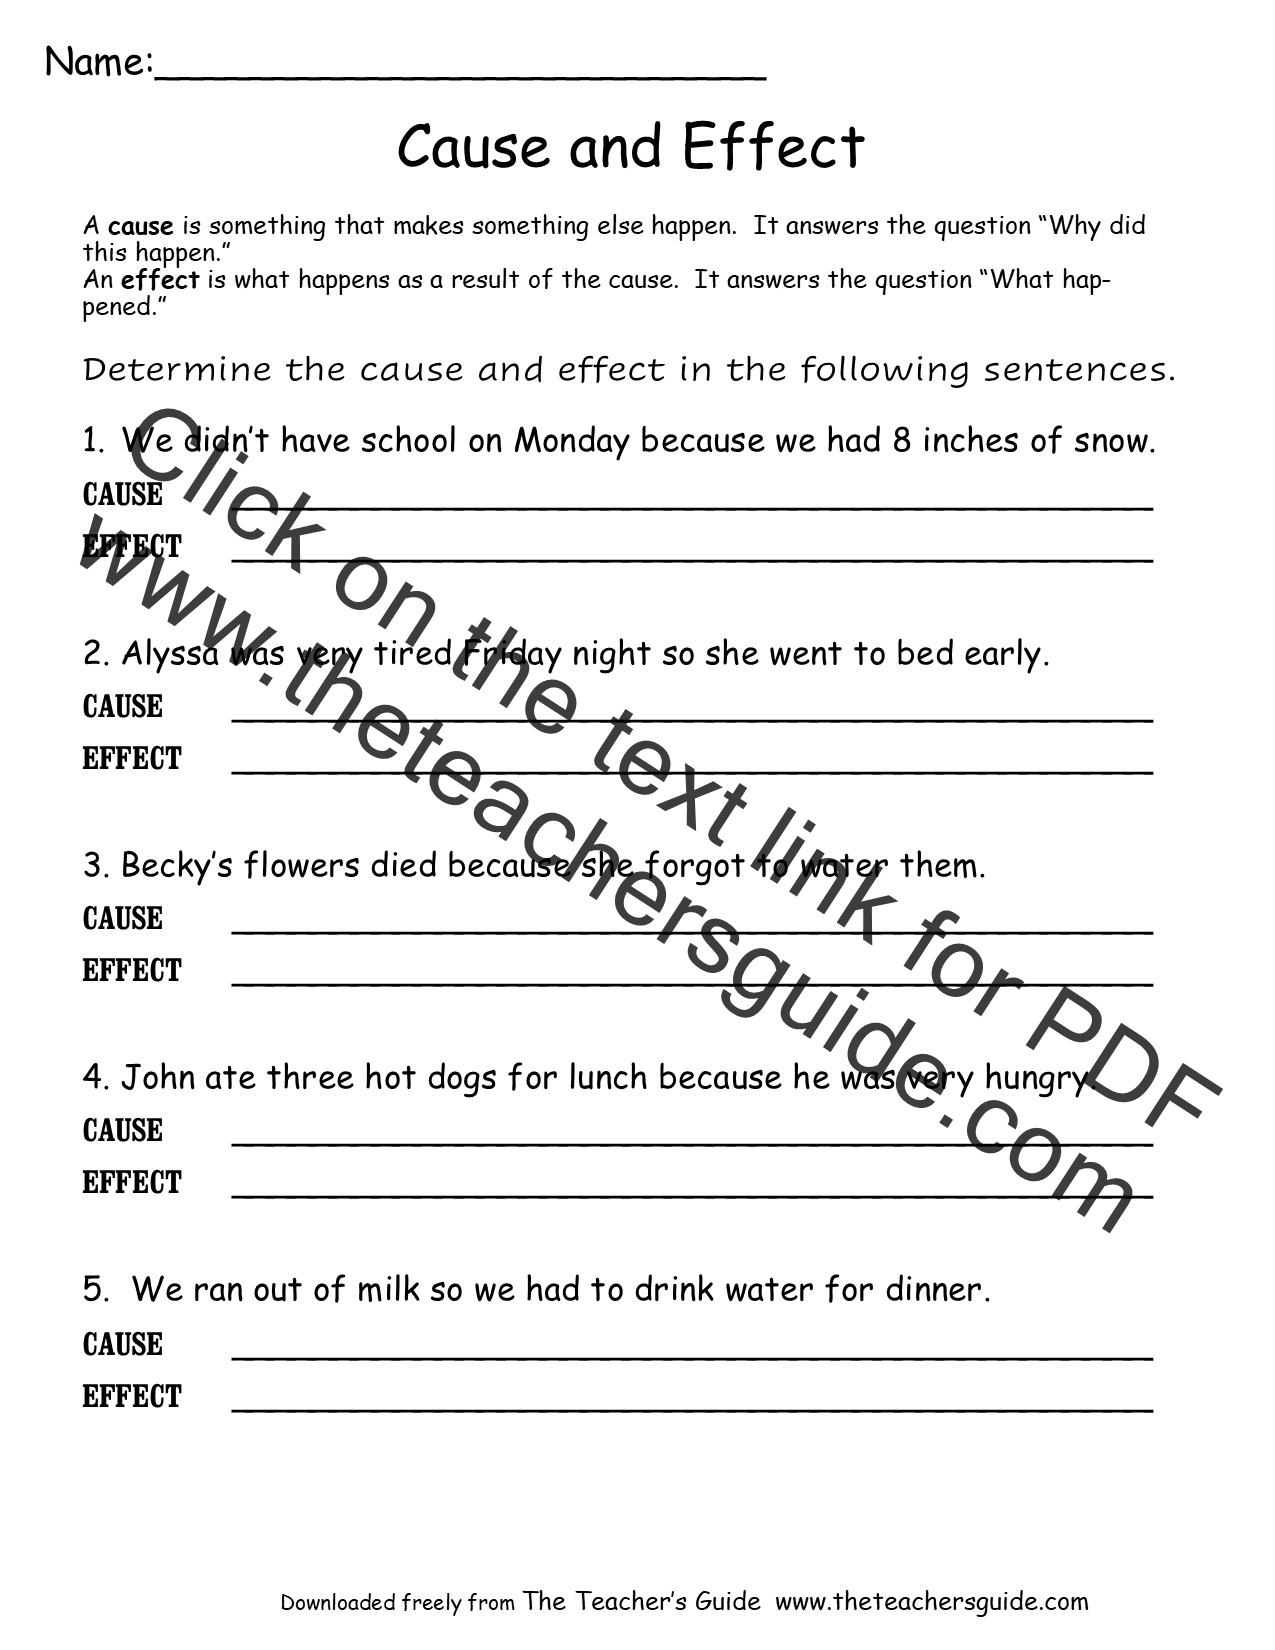 Flashlight Cause and Effect Worksheet | Flashlight, Worksheets and ...